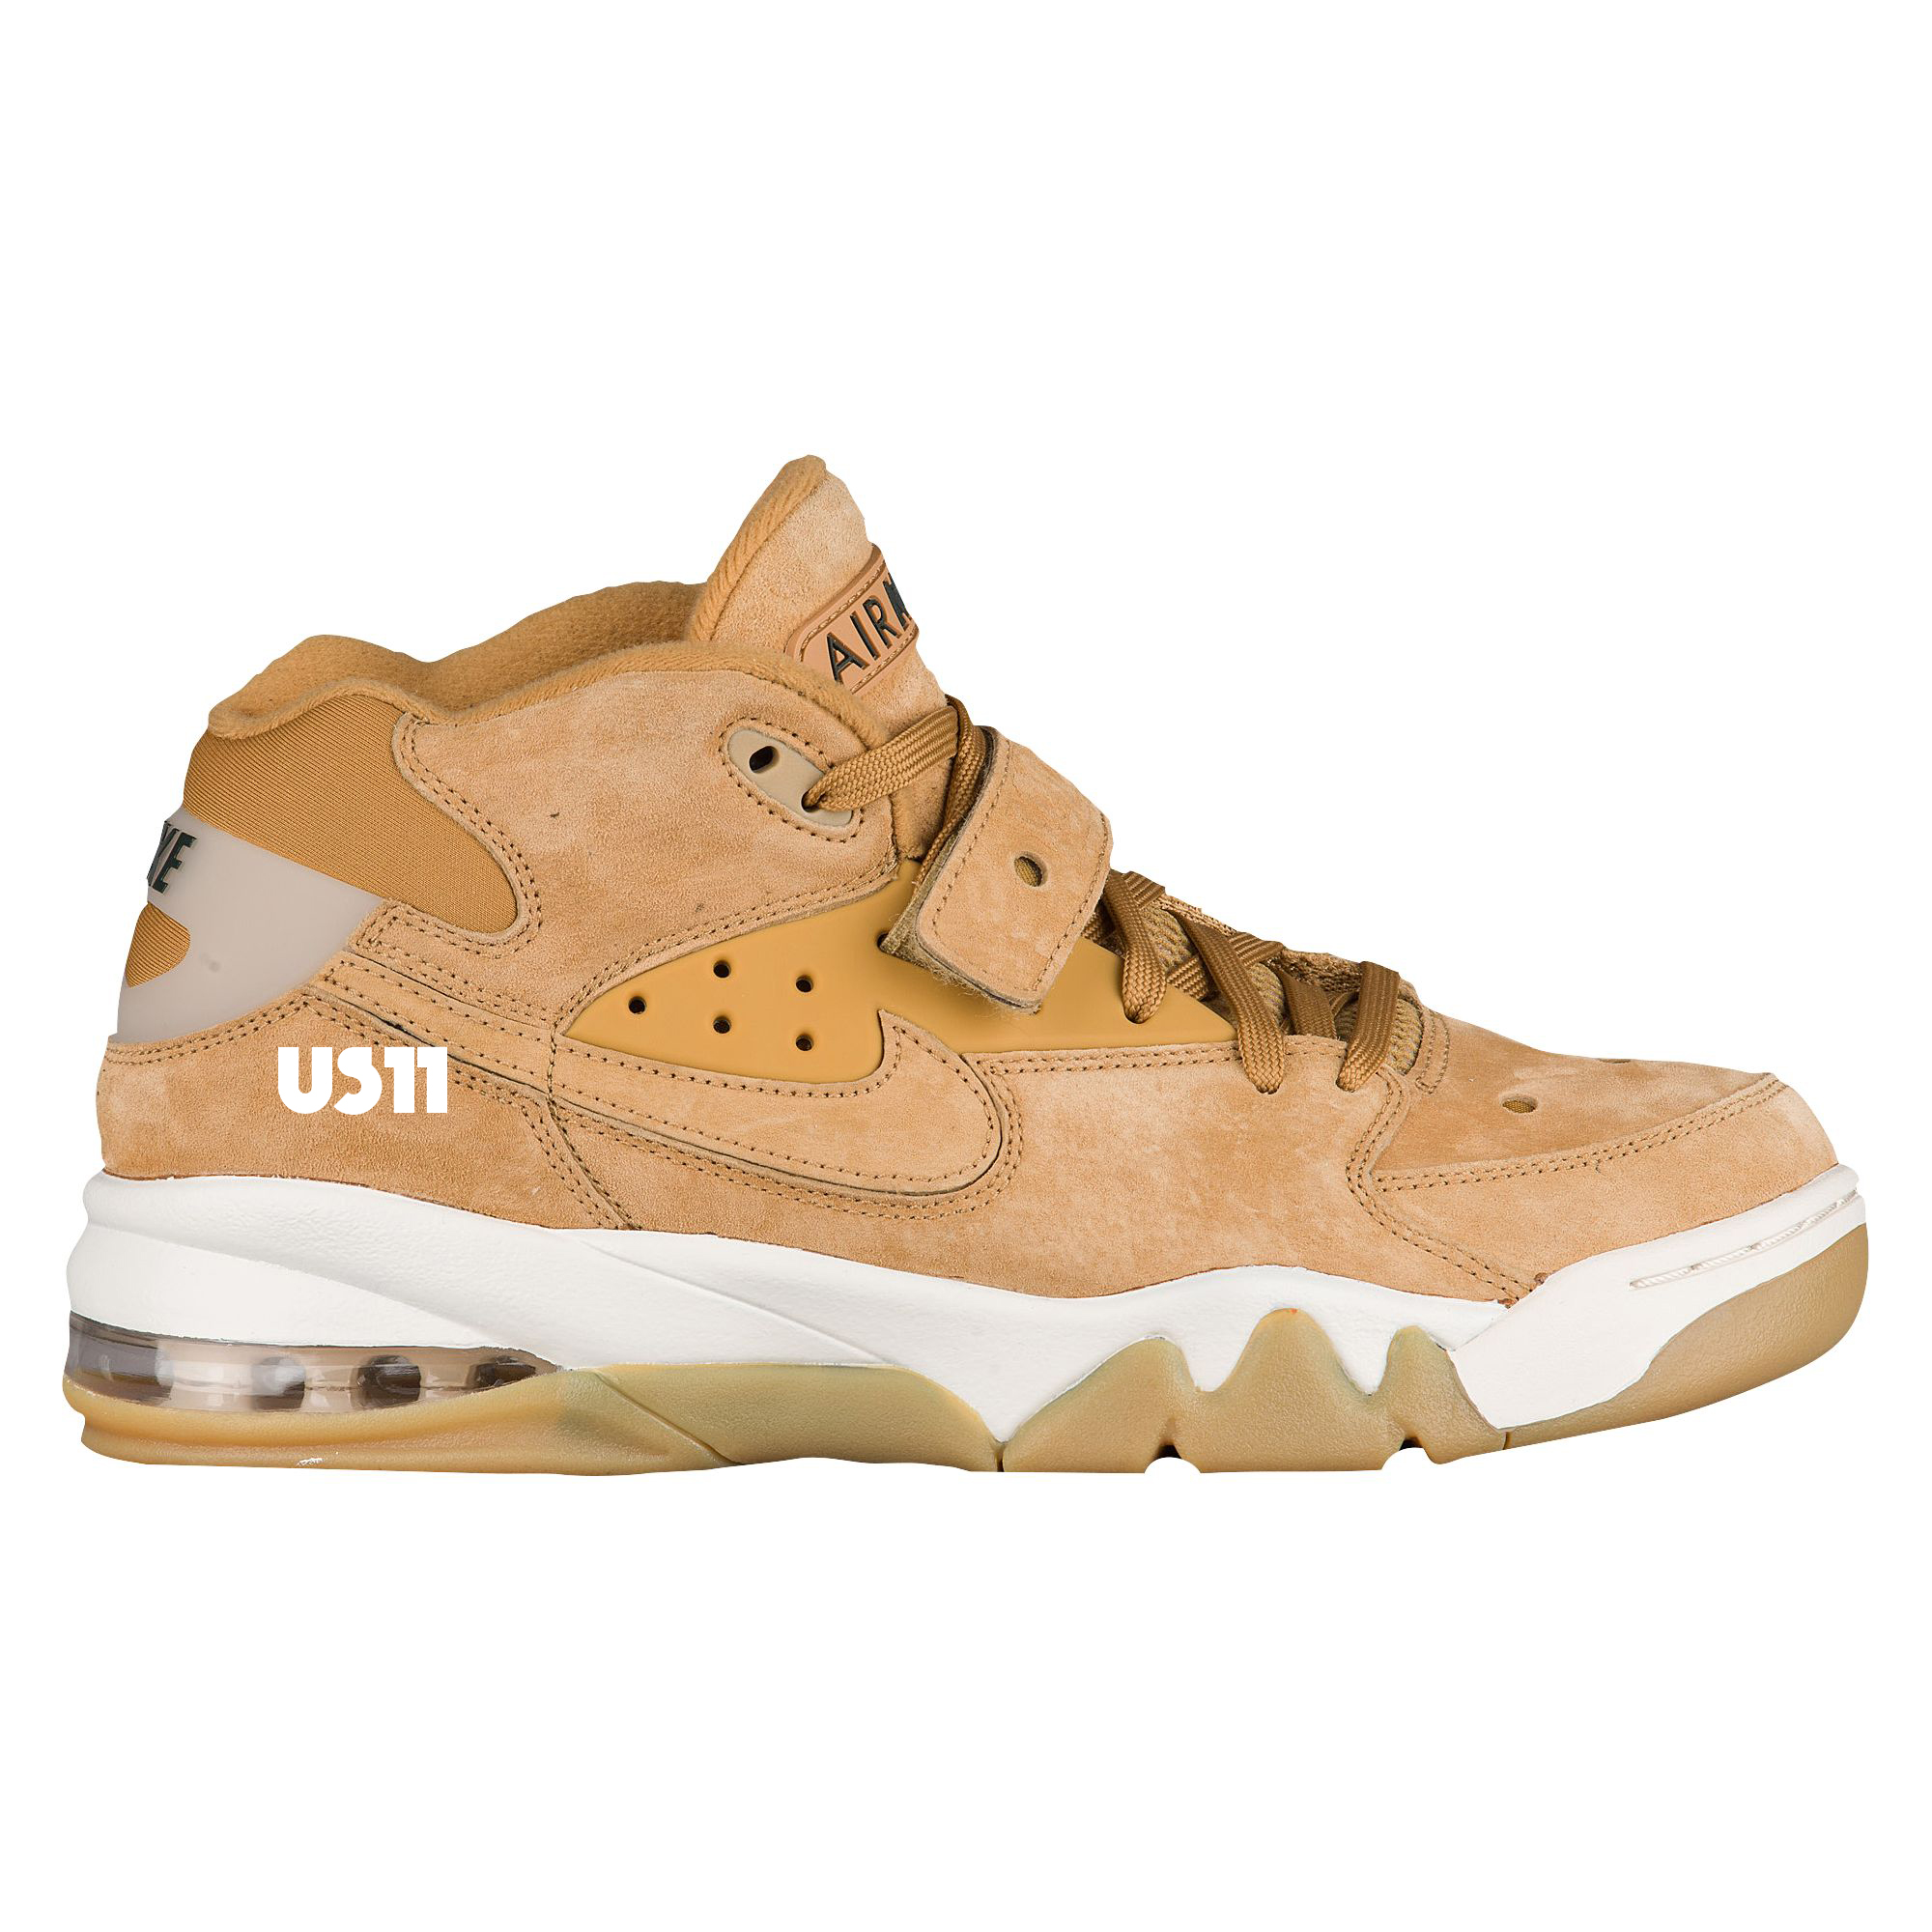 d7a06fb698c0 The Nike Air Force Max Gets the  Flax  Treatment for Fall - WearTesters